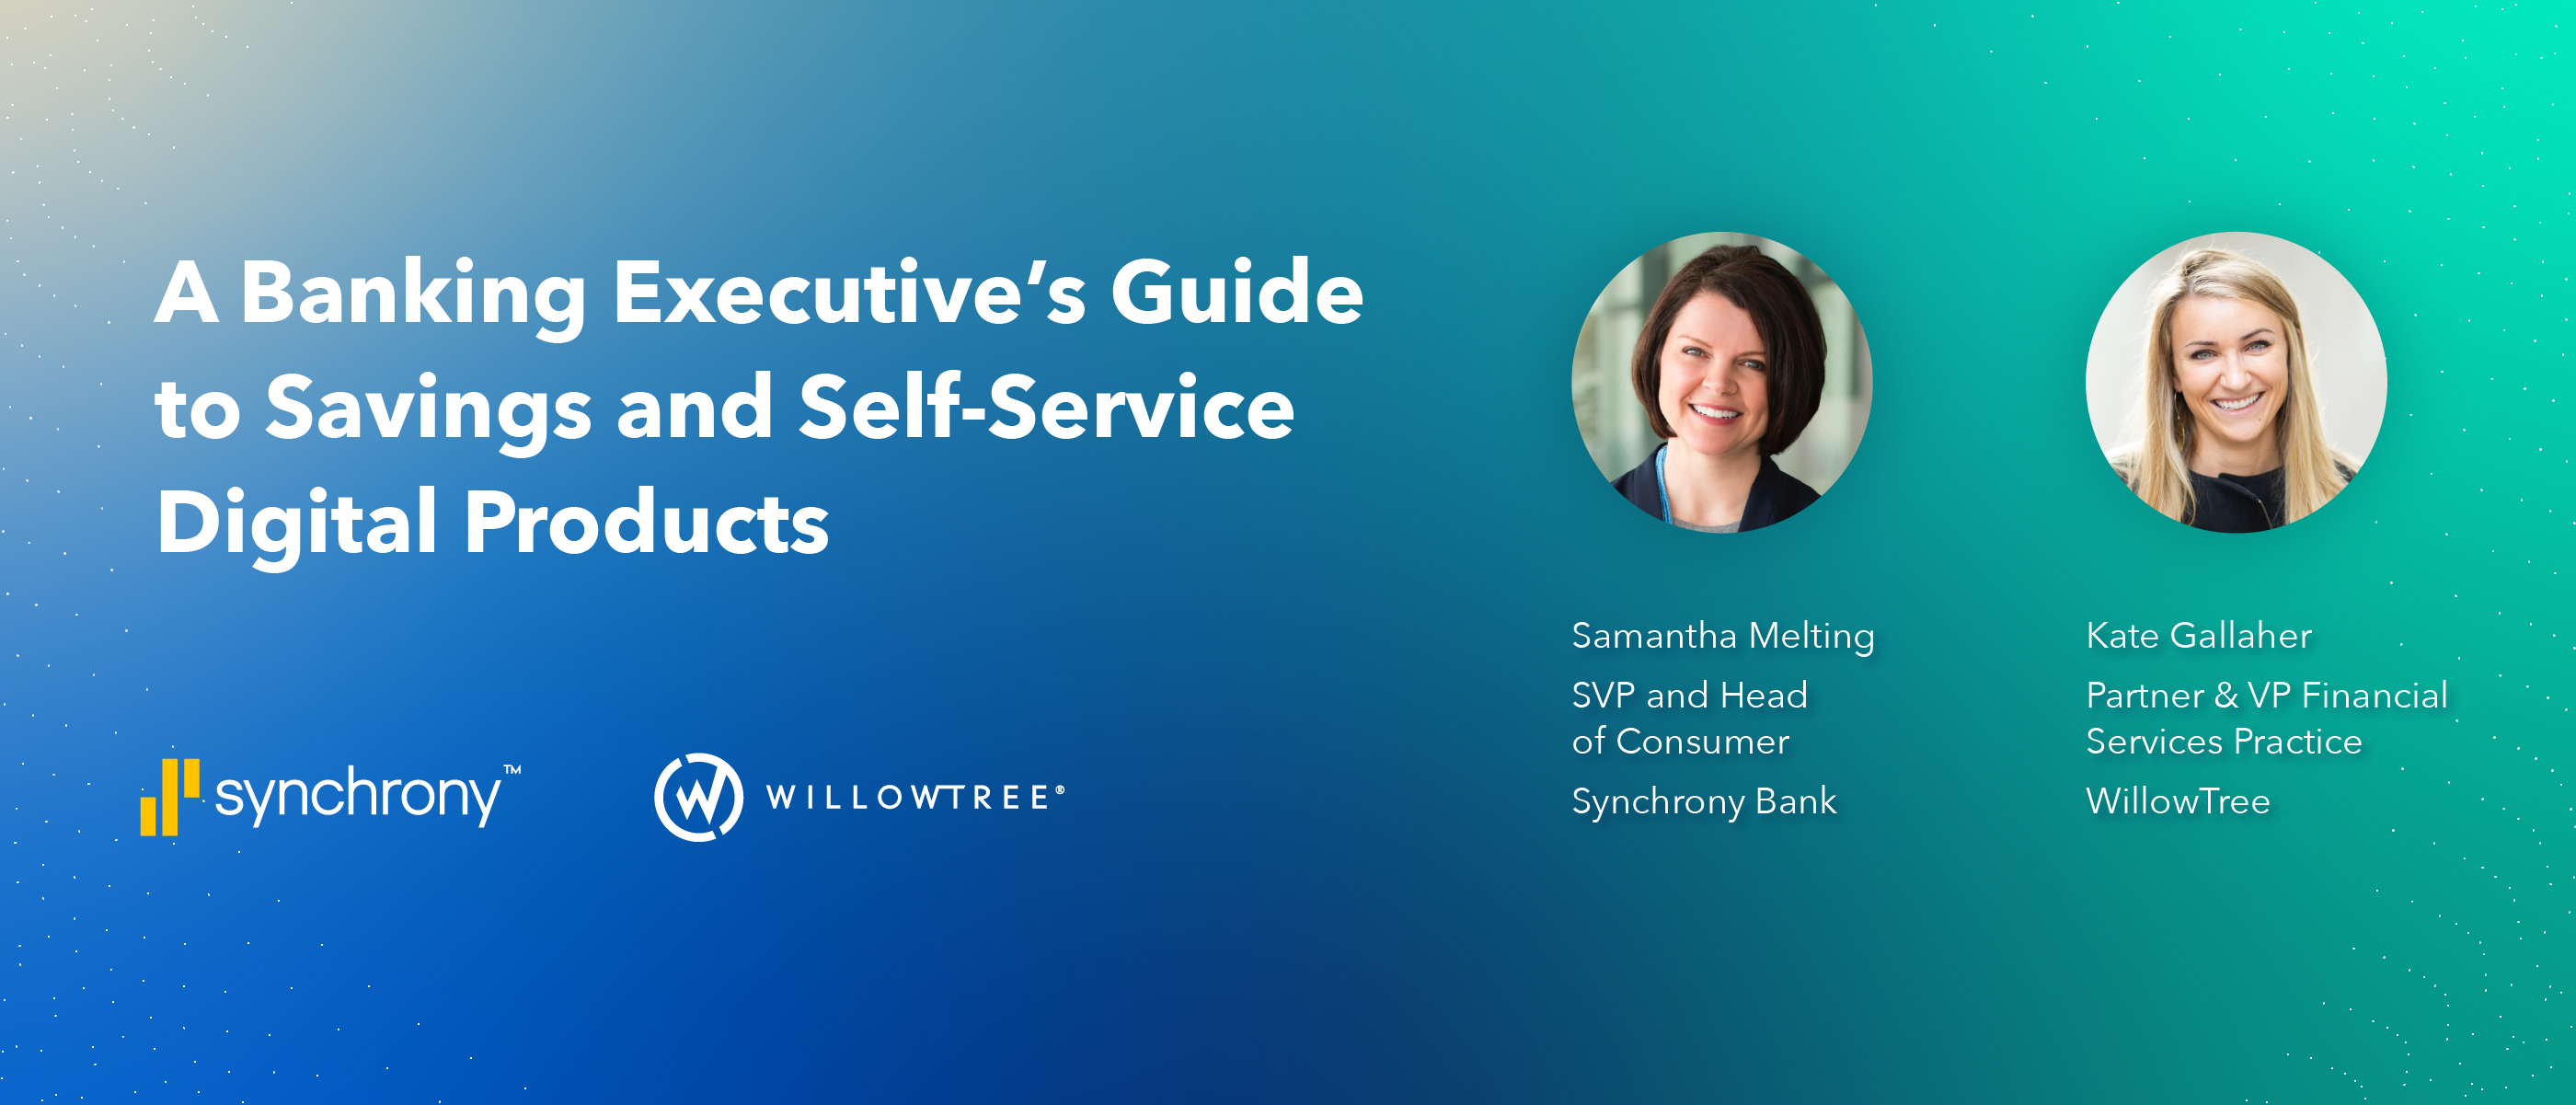 A Banking Executive's Guide to Savings and Self-Service Digital Products